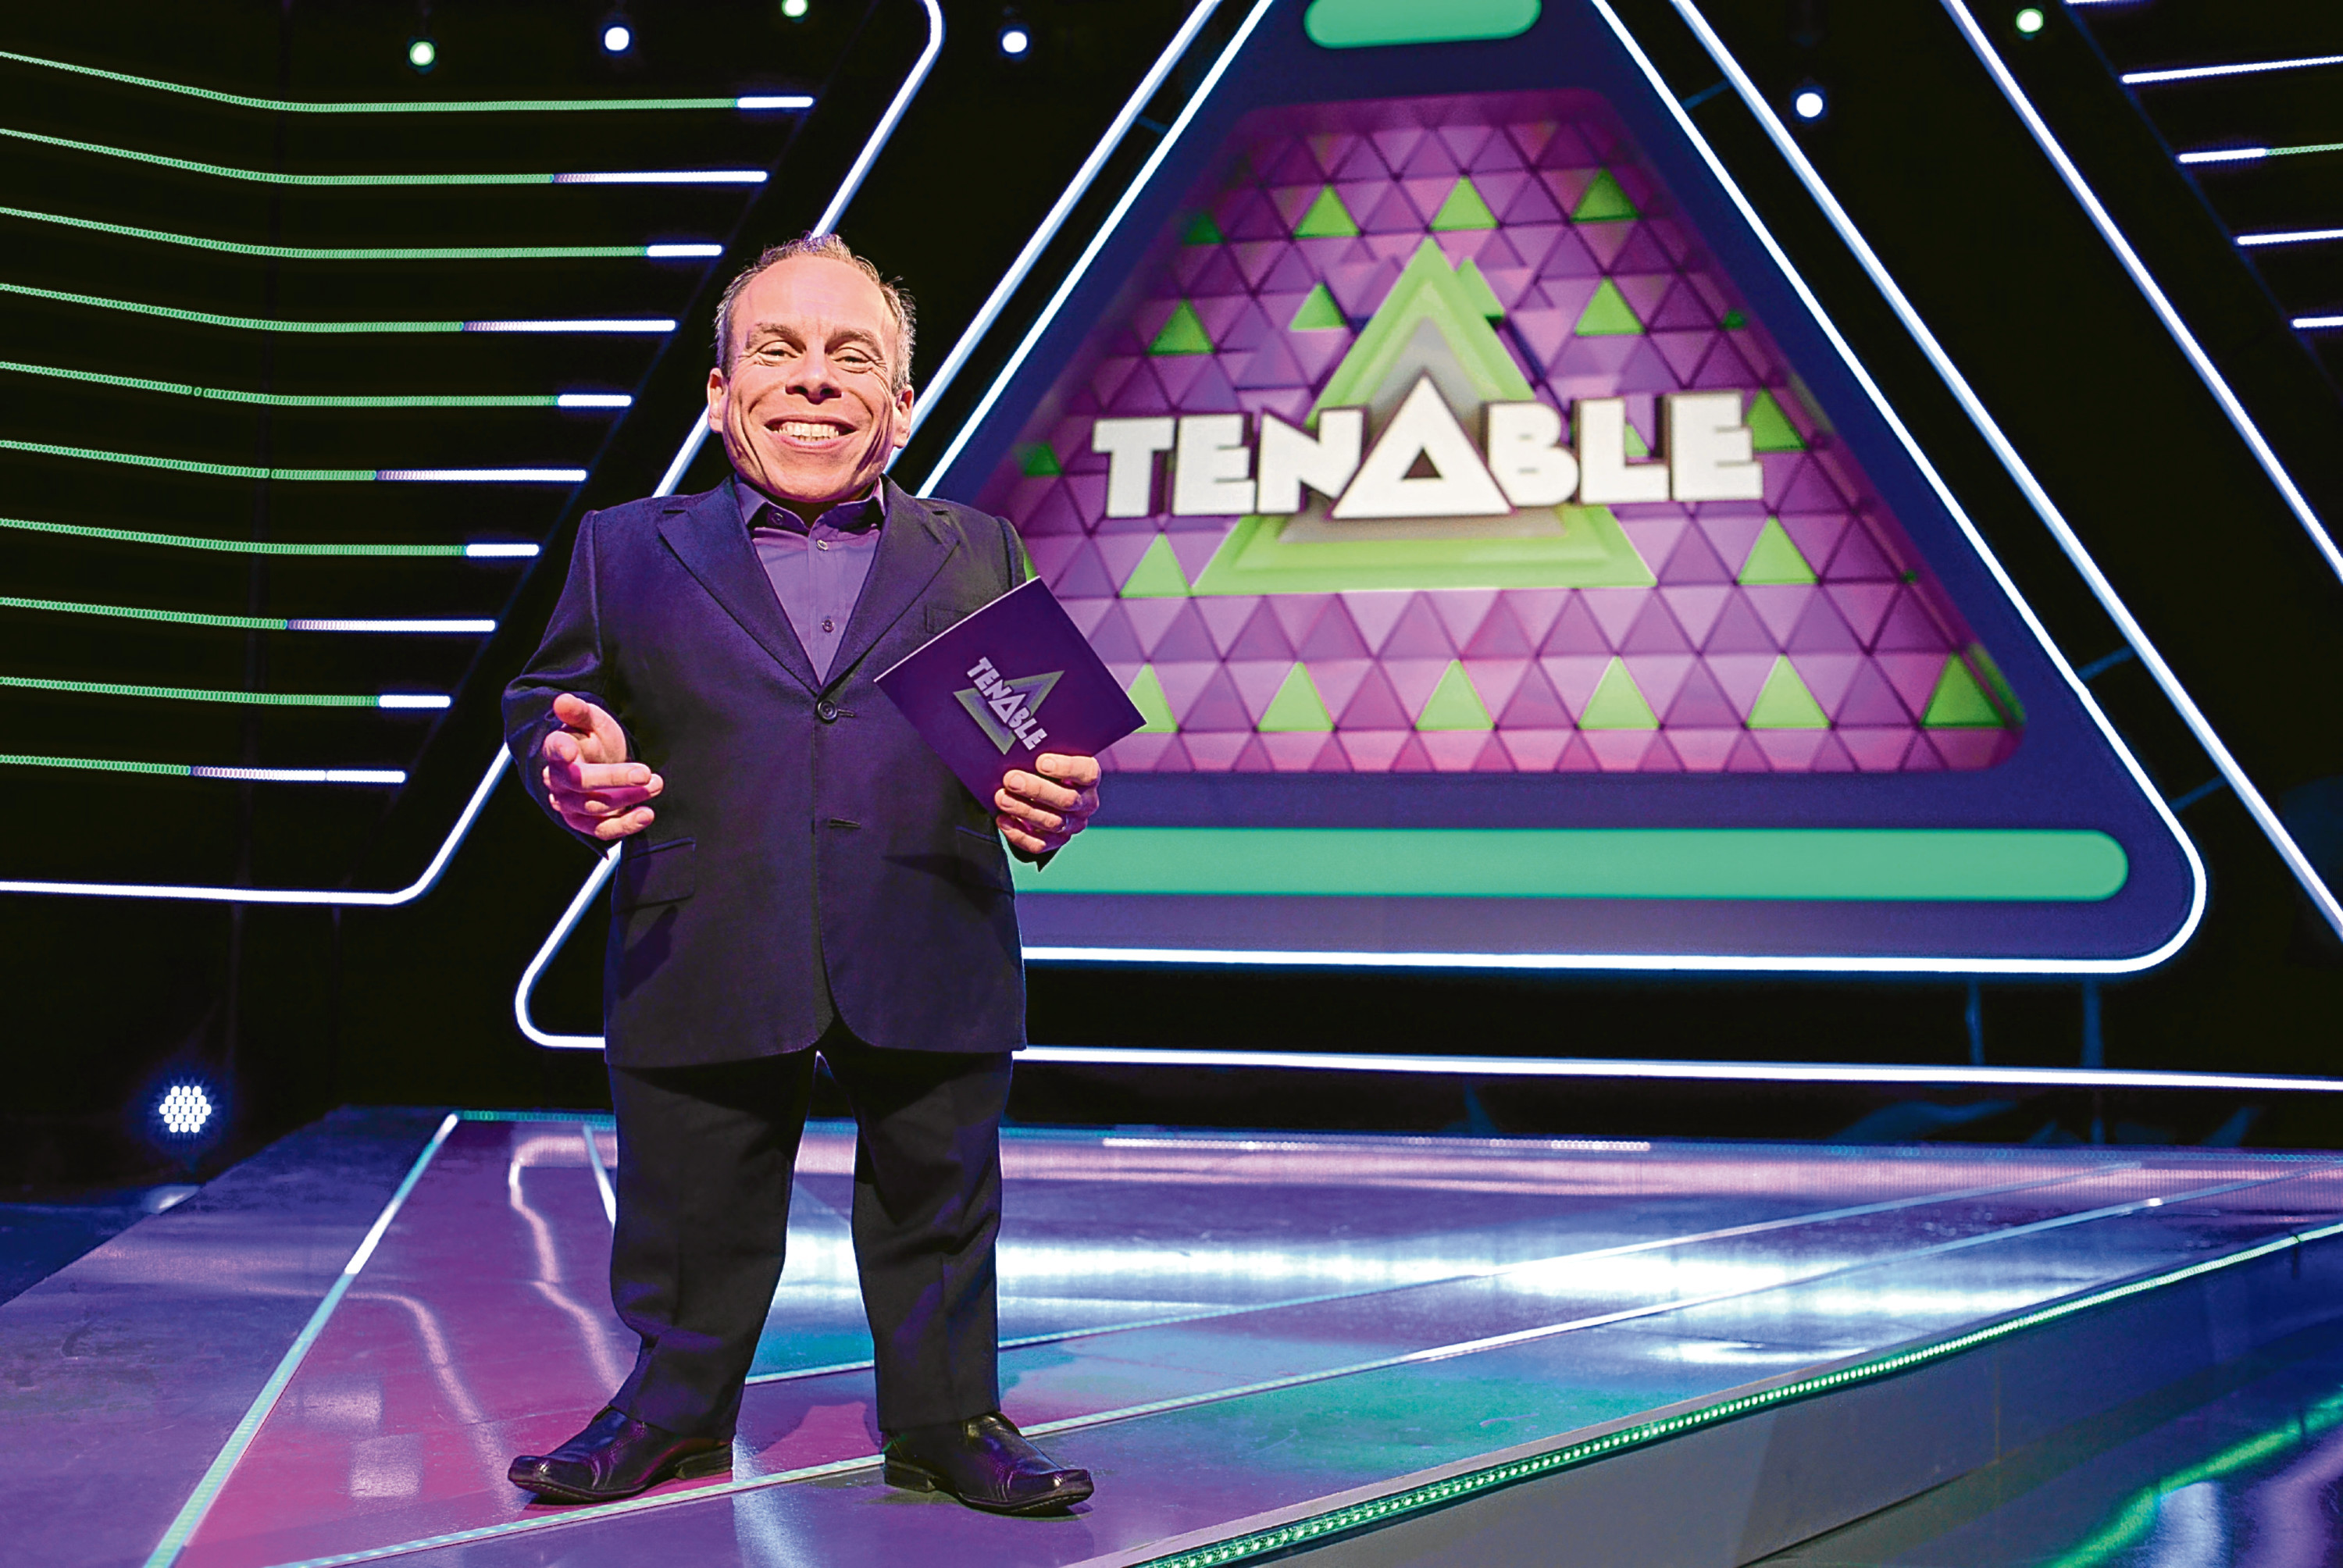 Tenable Host Warwick Davis © Endermol Productions